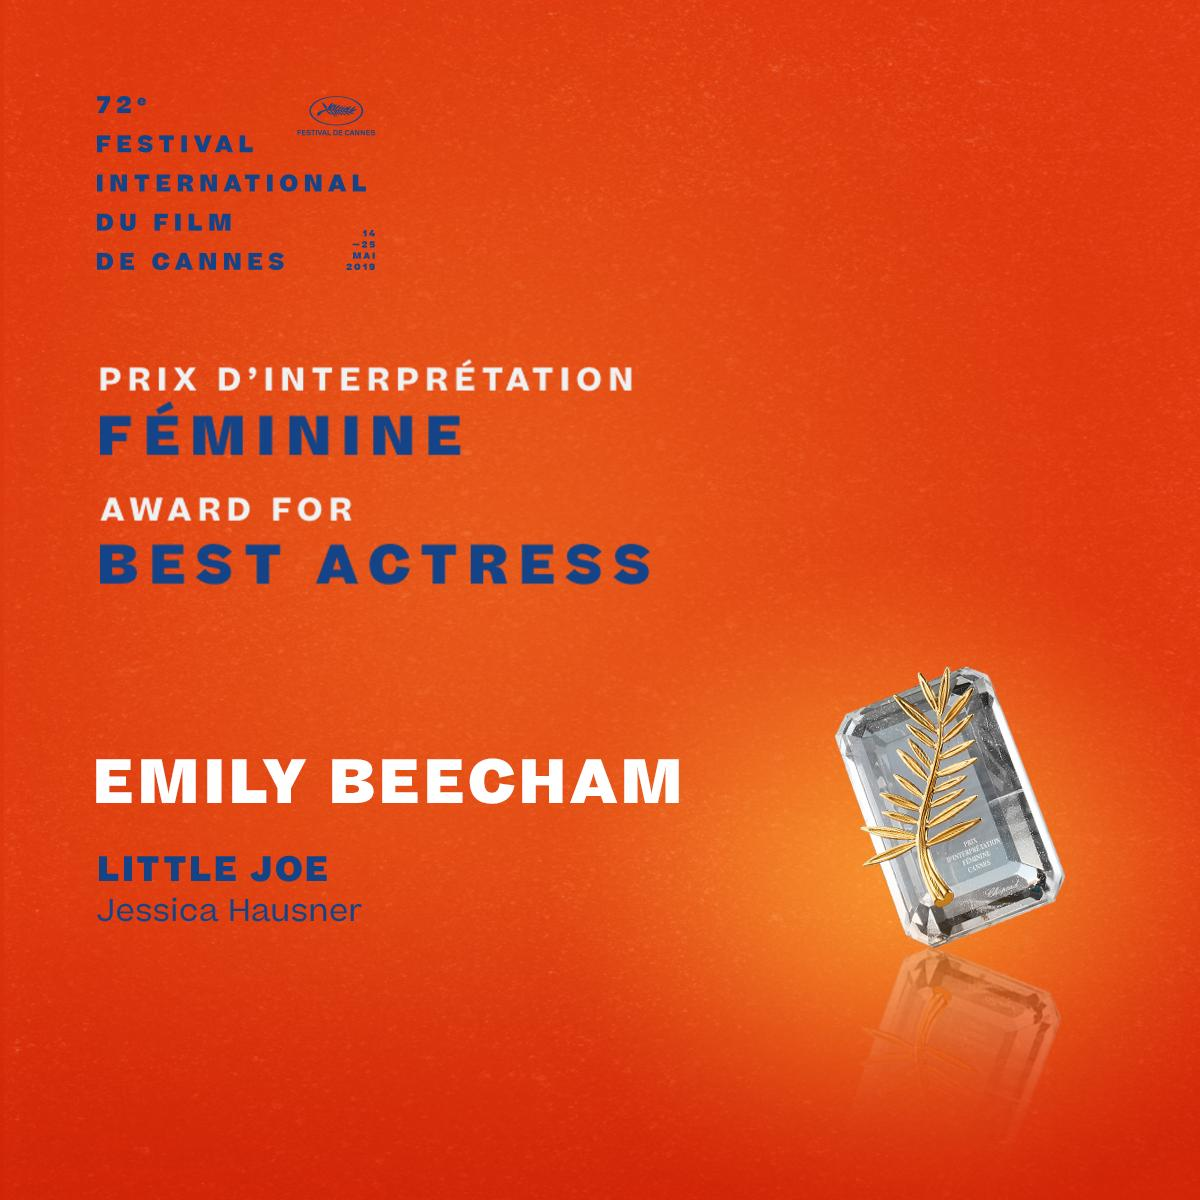 The Award for Best Actress goes to… Emily Beecham for #LittleJoe by Jessica Hausner  #Cannes2019 #Awards https://t.co/jp2H87igKz